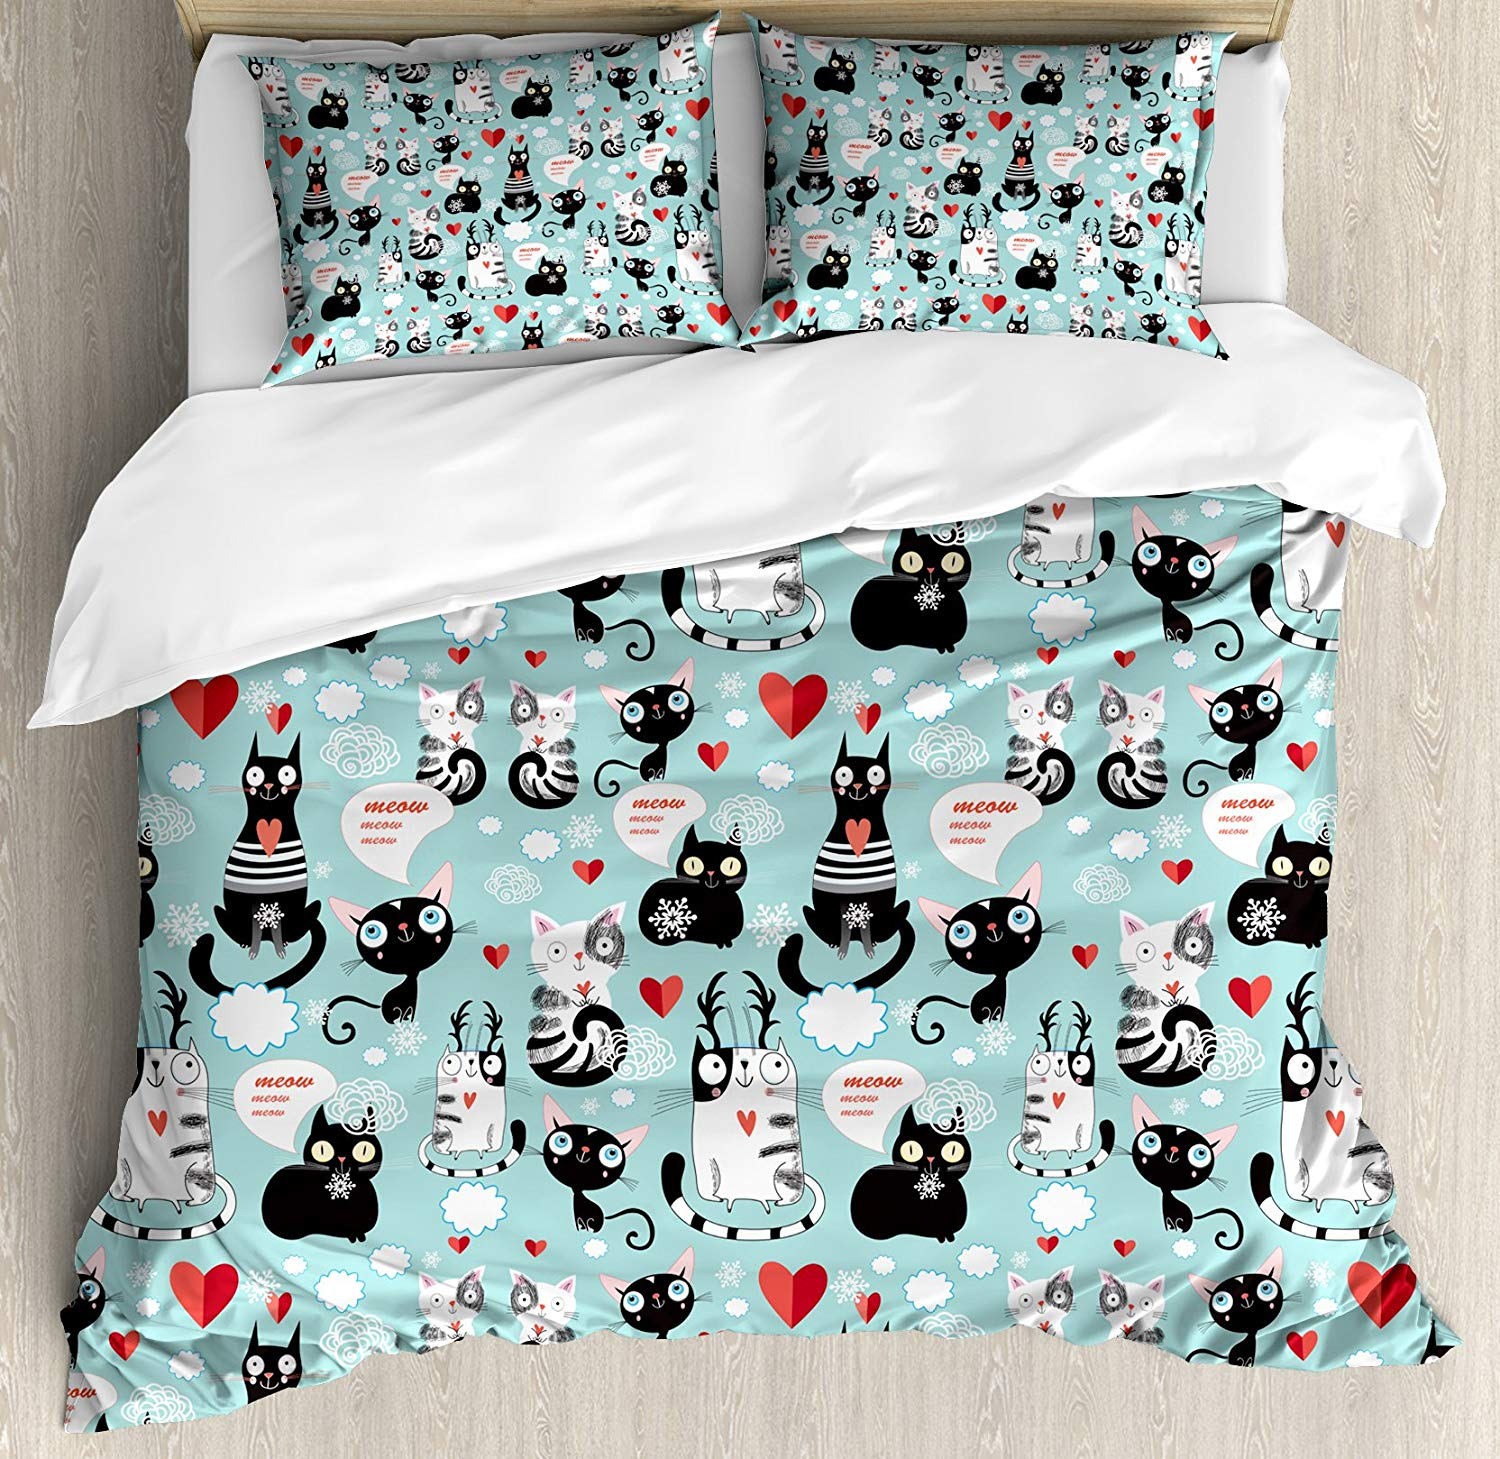 Cat Lover Duvet Cover Set Black and White Cats in Love Meow Print Among Hearts Daydreaming Kitties Cat Ears 3/4pcs Bedding SetCat Lover Duvet Cover Set Black and White Cats in Love Meow Print Among Hearts Daydreaming Kitties Cat Ears 3/4pcs Bedding Set